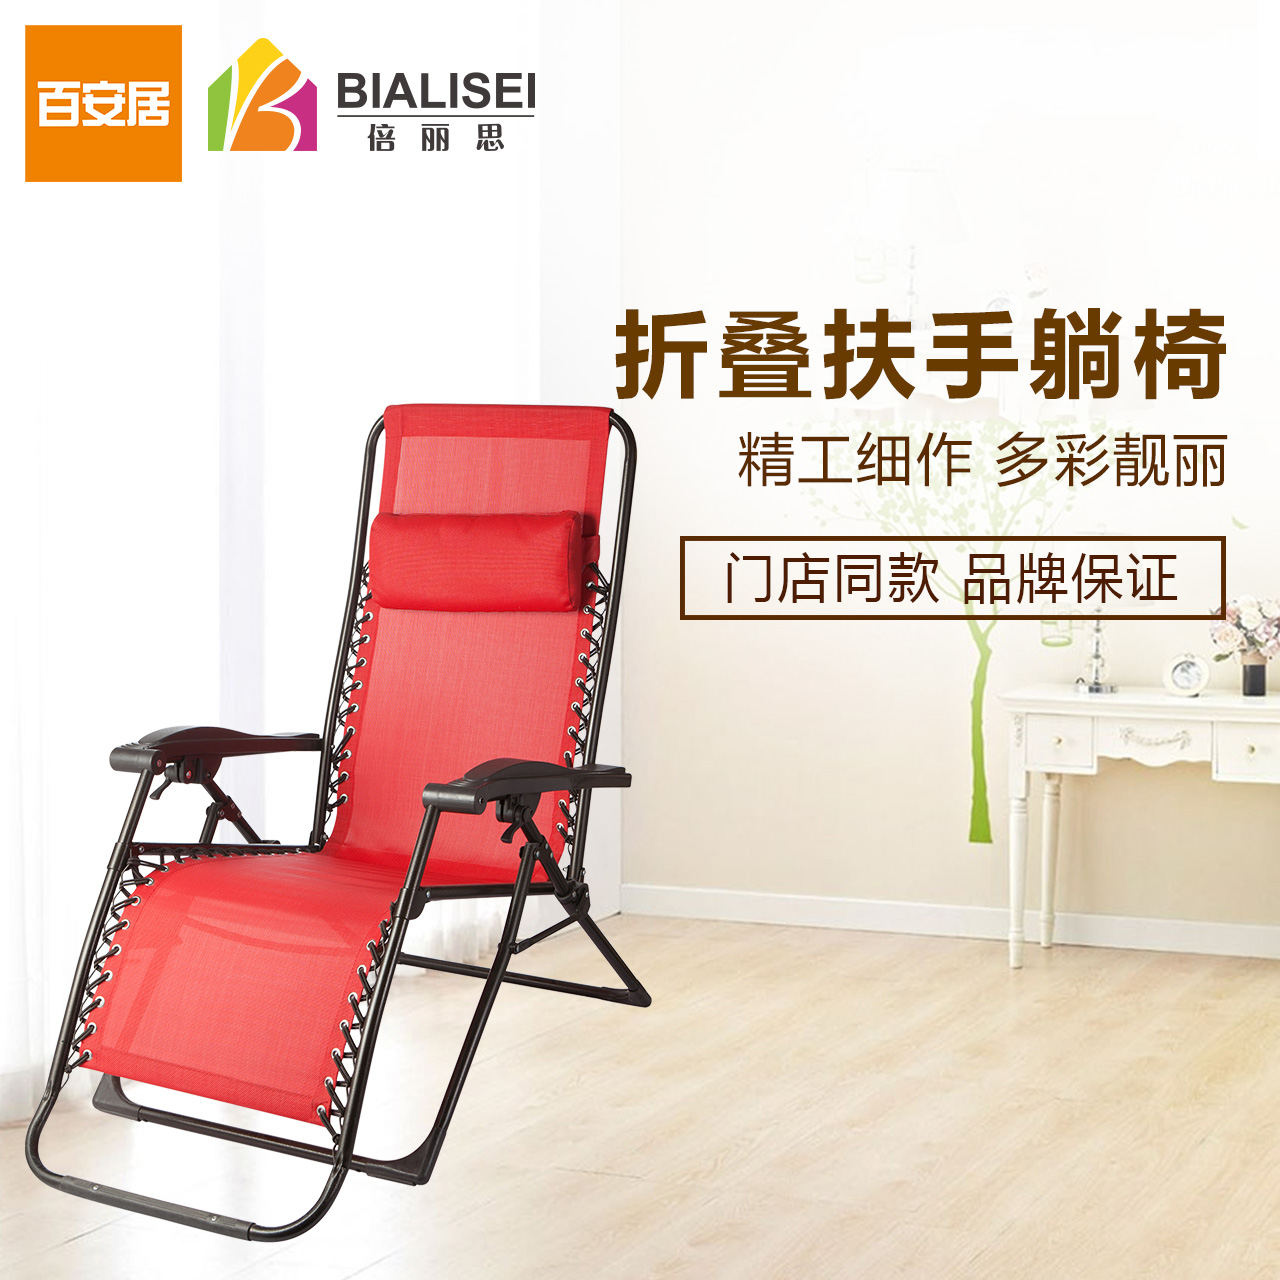 Bai Anju Bilisi Blooma Folding Handrail Chair With Cup Holder Red Home  Balcony Folding Chair